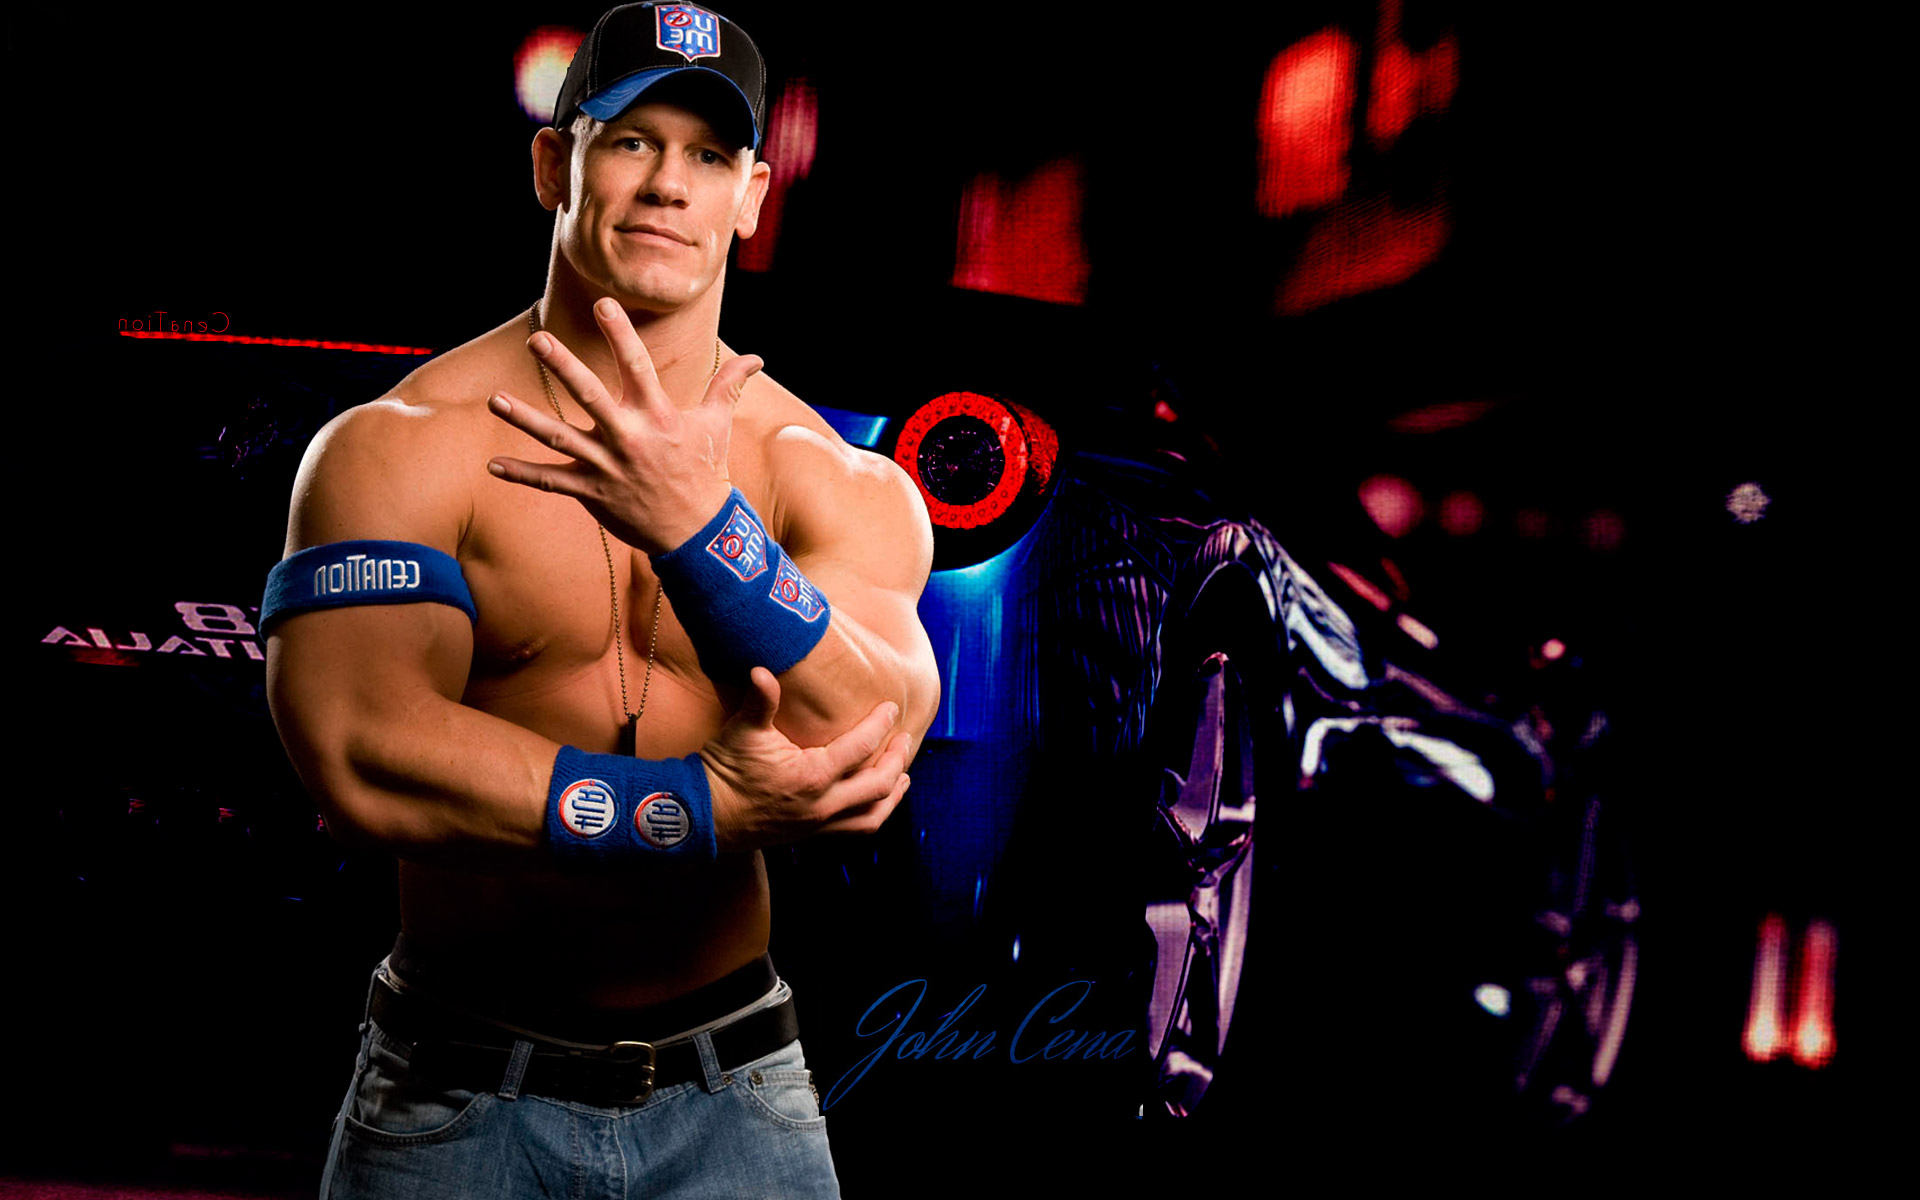 john cena wallpapers, pictures, images